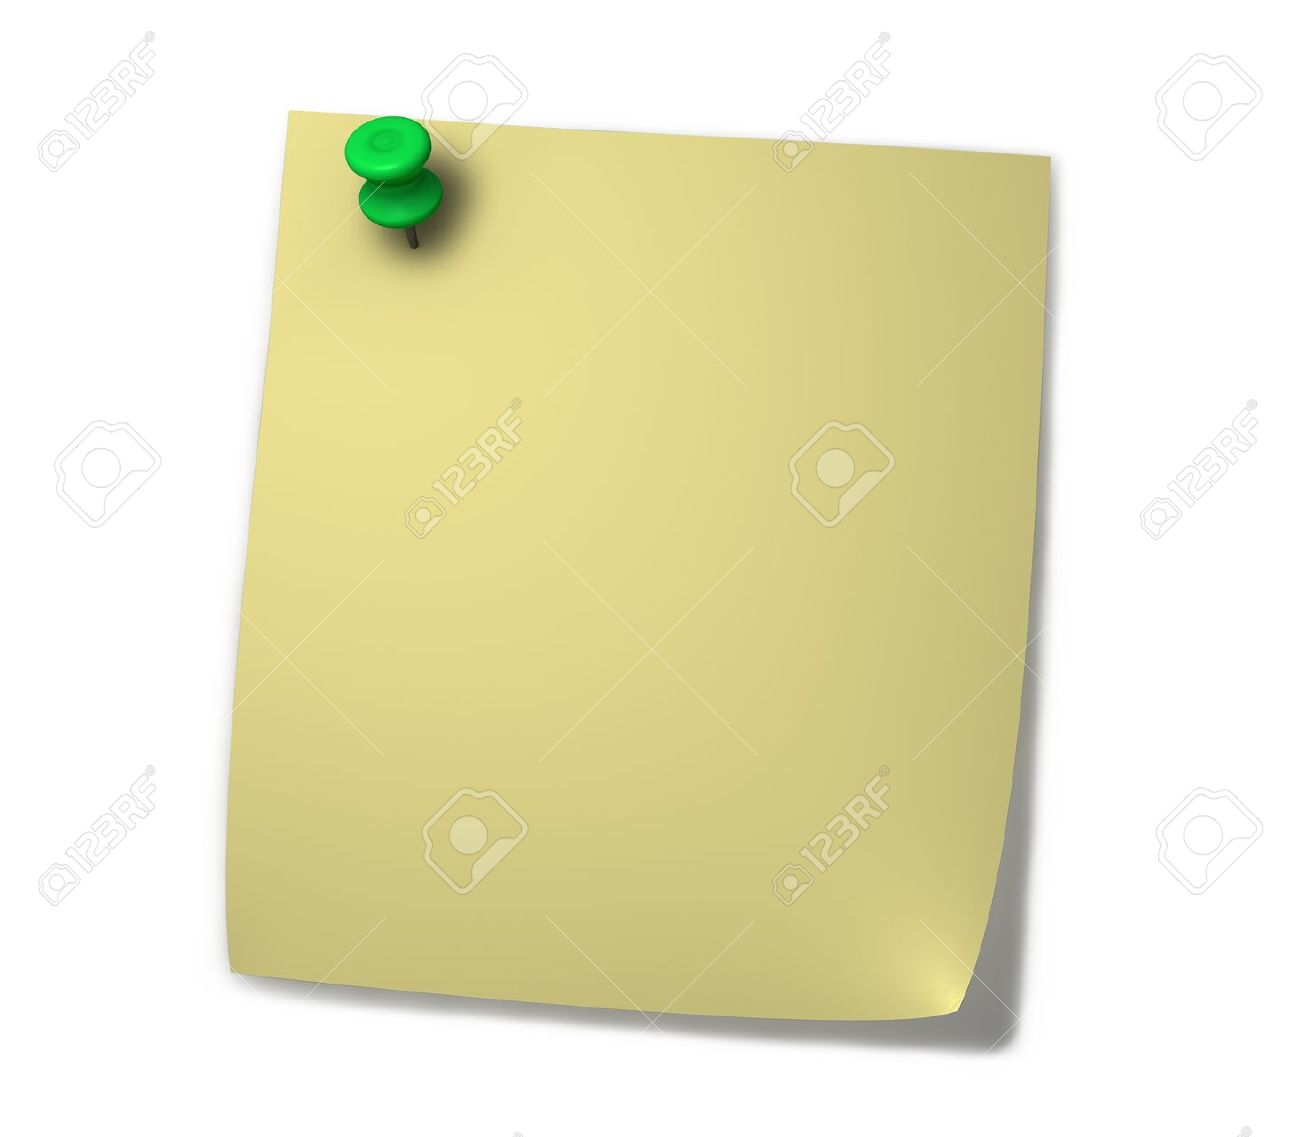 1300x1137 Blank Yellow Post It For Notes With Green Drawing Pin And Shadow